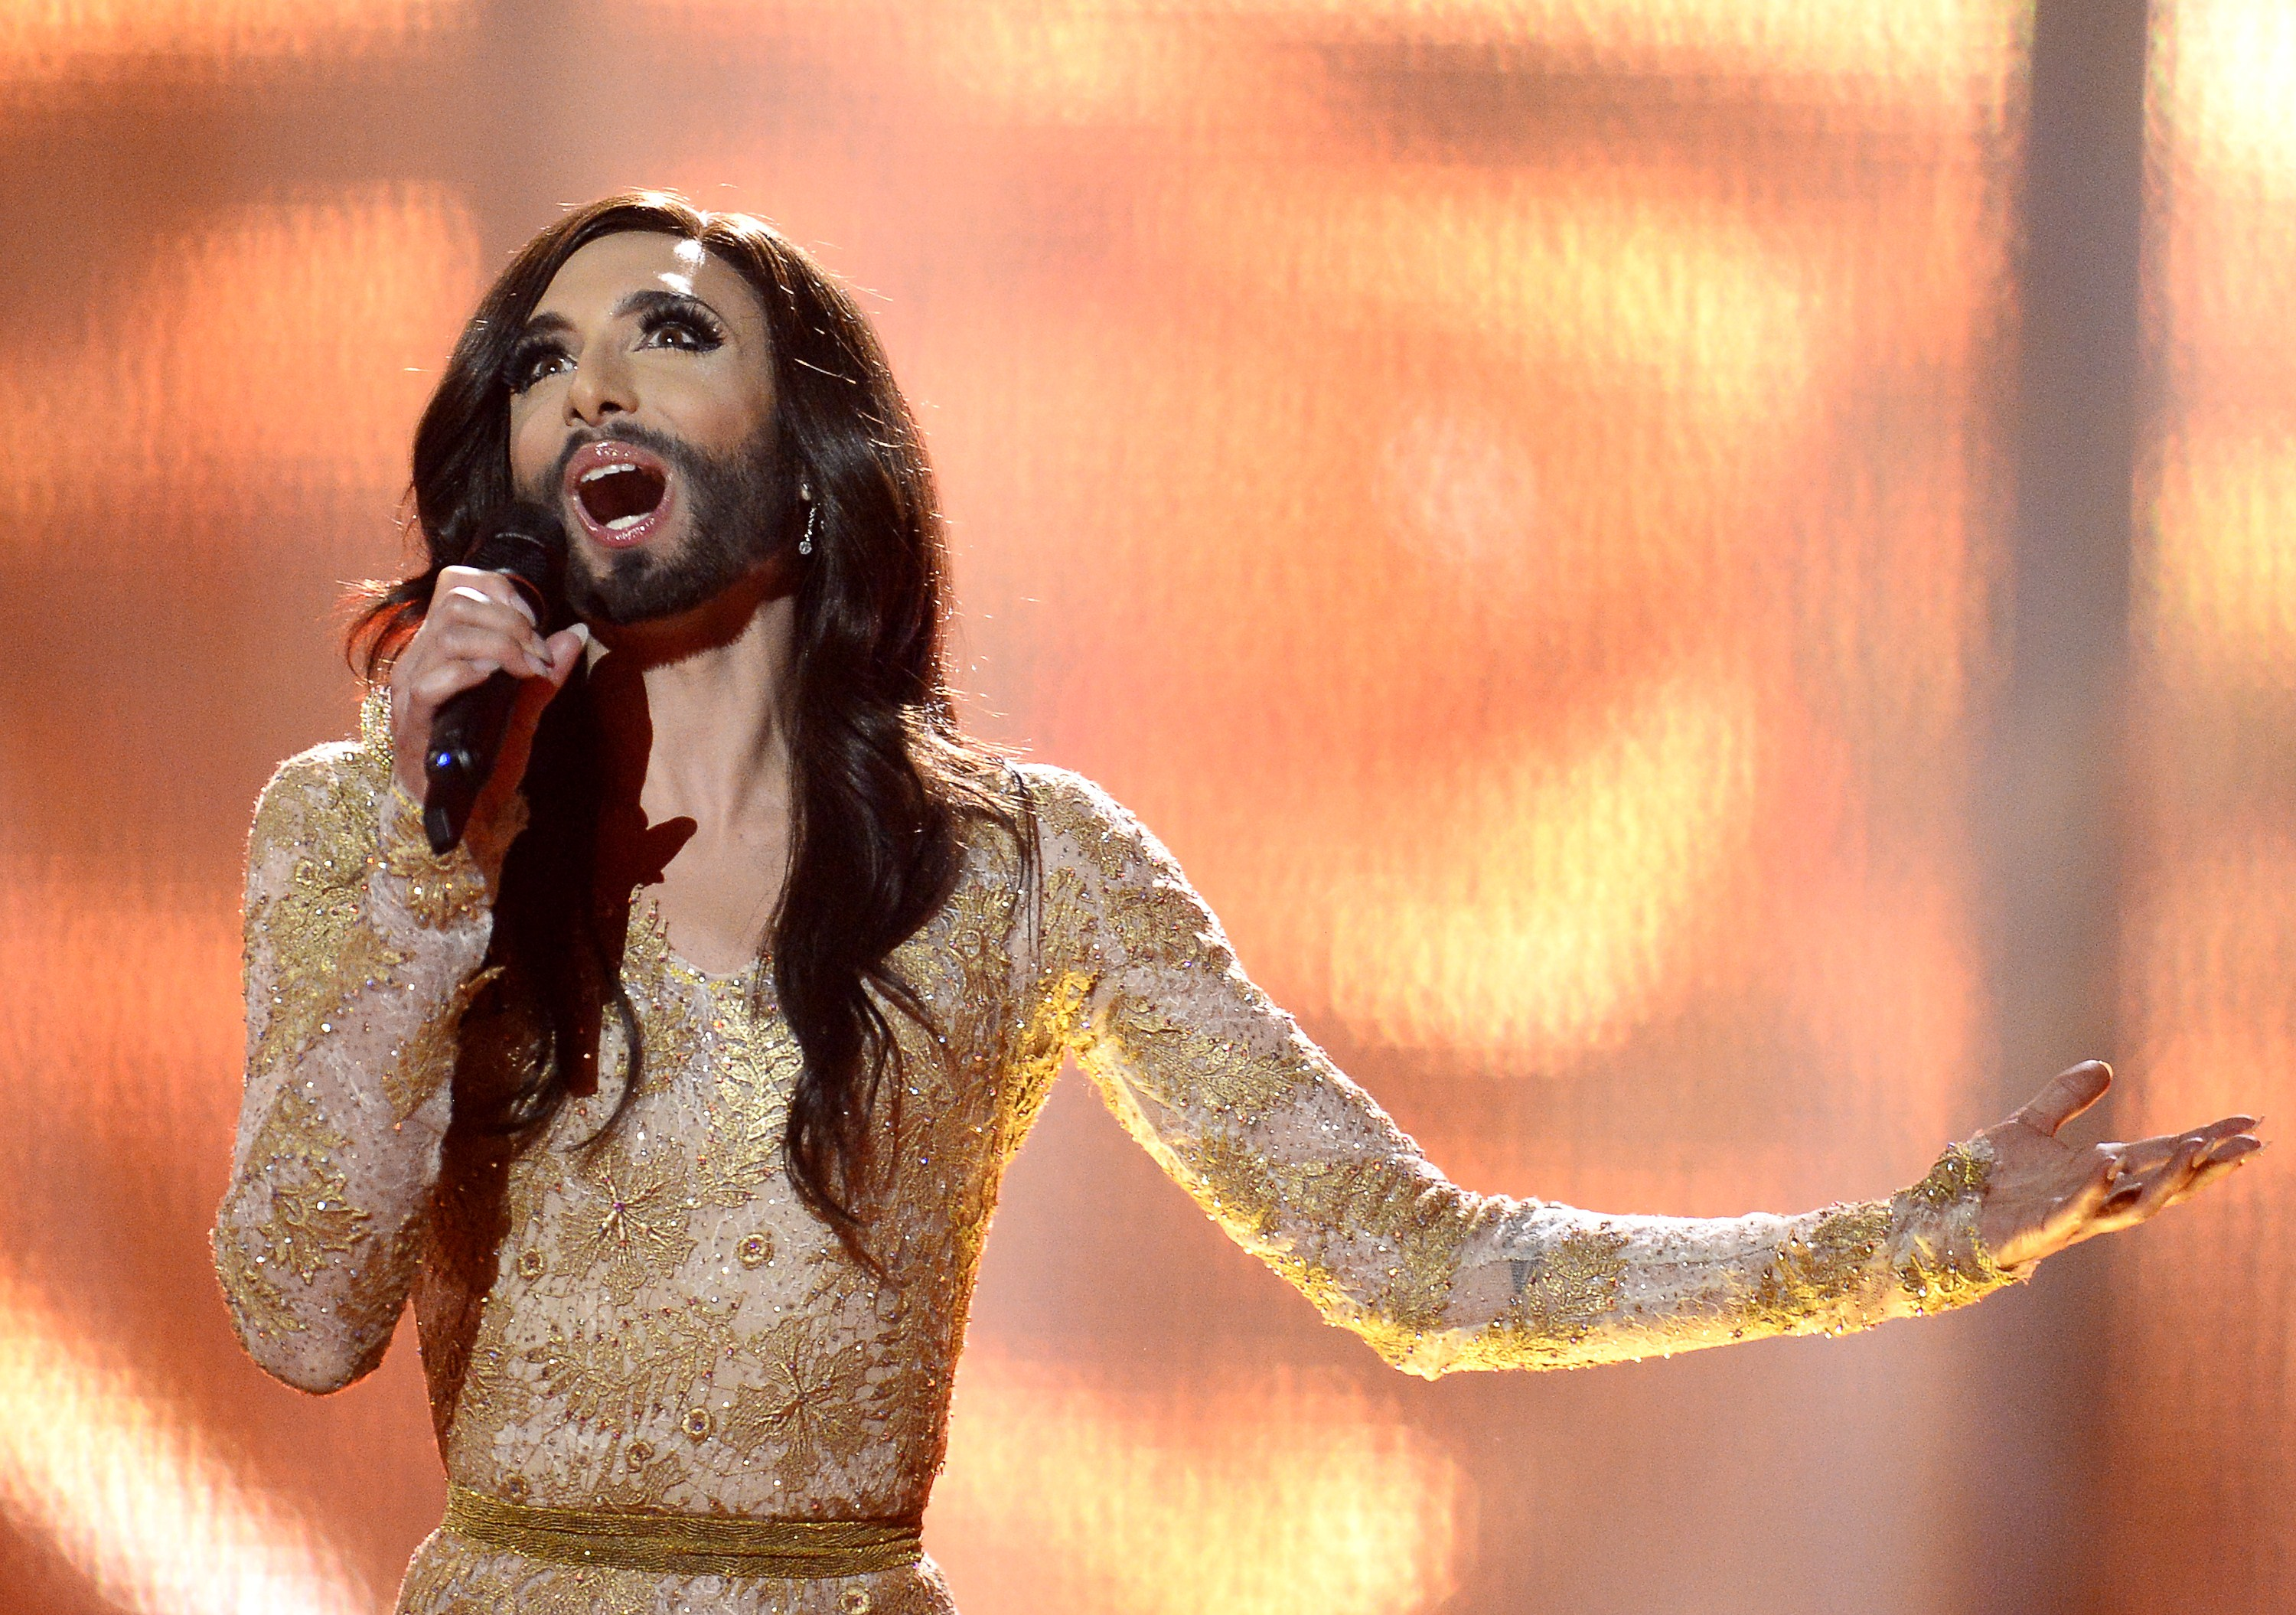 Coronavirus is now a threat to the Eurovision song contest